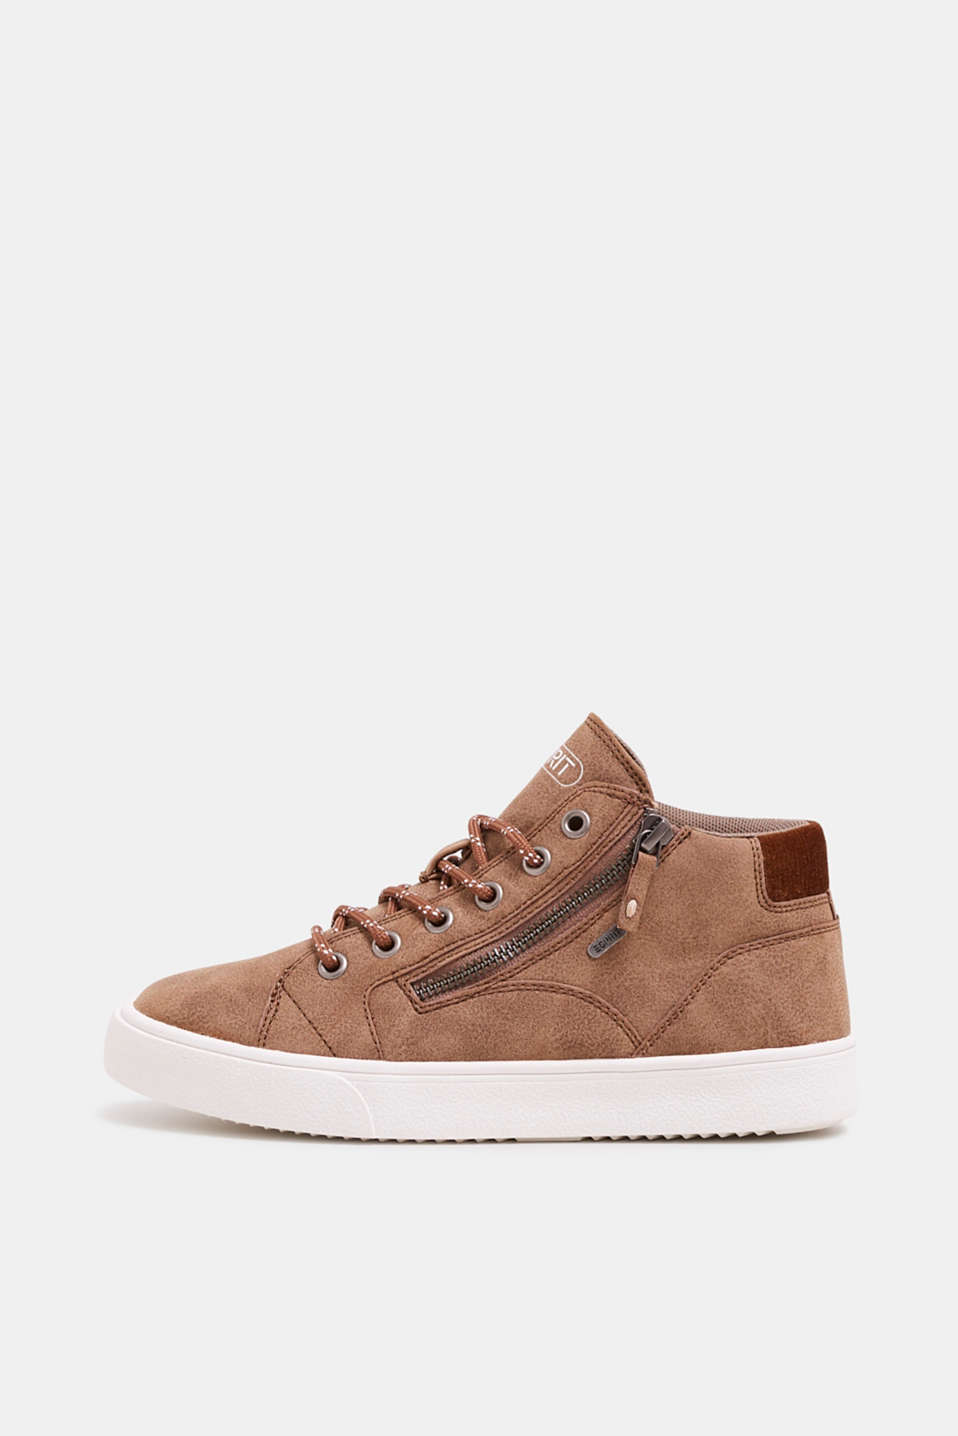 Esprit - Sneakers alte in similpelle vegana